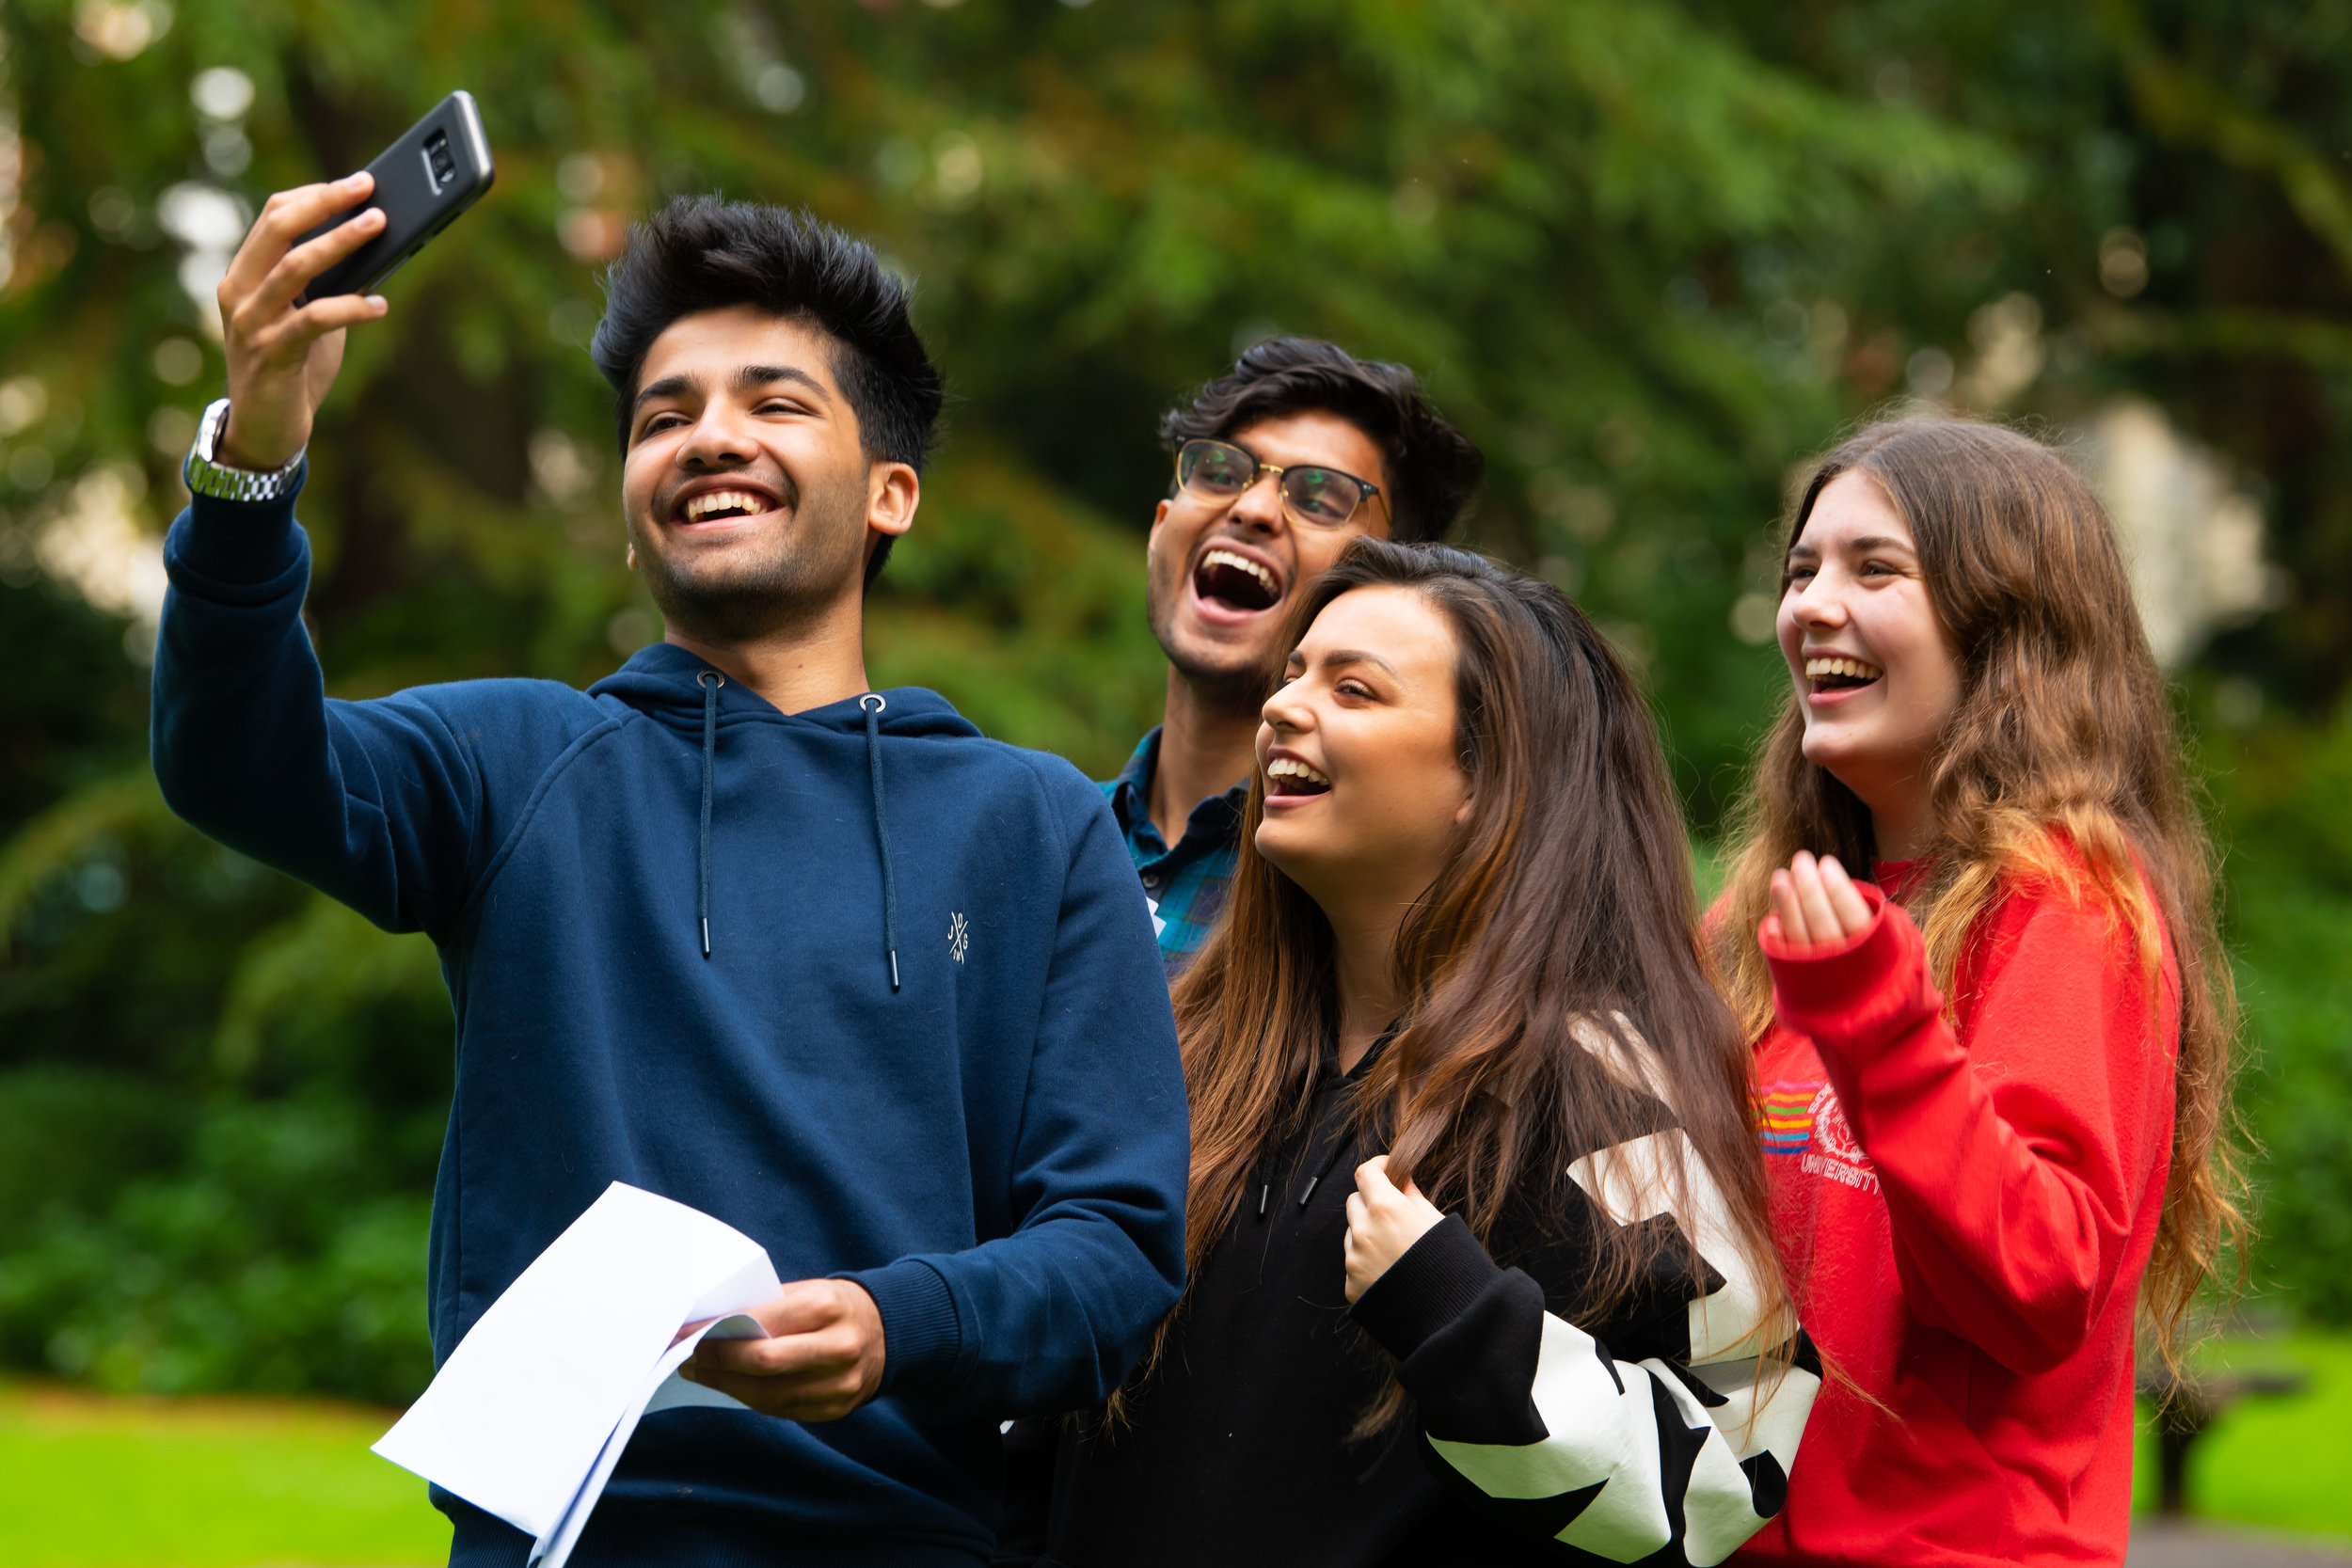 SWANSEA, UNITED KINGDOM - AUGUST 16: Adan Khan (L) takes a selfie with Abu Jaffar Latif, Victoria Baker and Angharad Howden-Evans on A Level results day at Ffynone House School on August 16, 2018 in Swansea, United Kingdom. A level examination has been changed in the past year as coursework has been ditched for an exam only based results system. (Photo by Matthew Horwood/Getty Images)